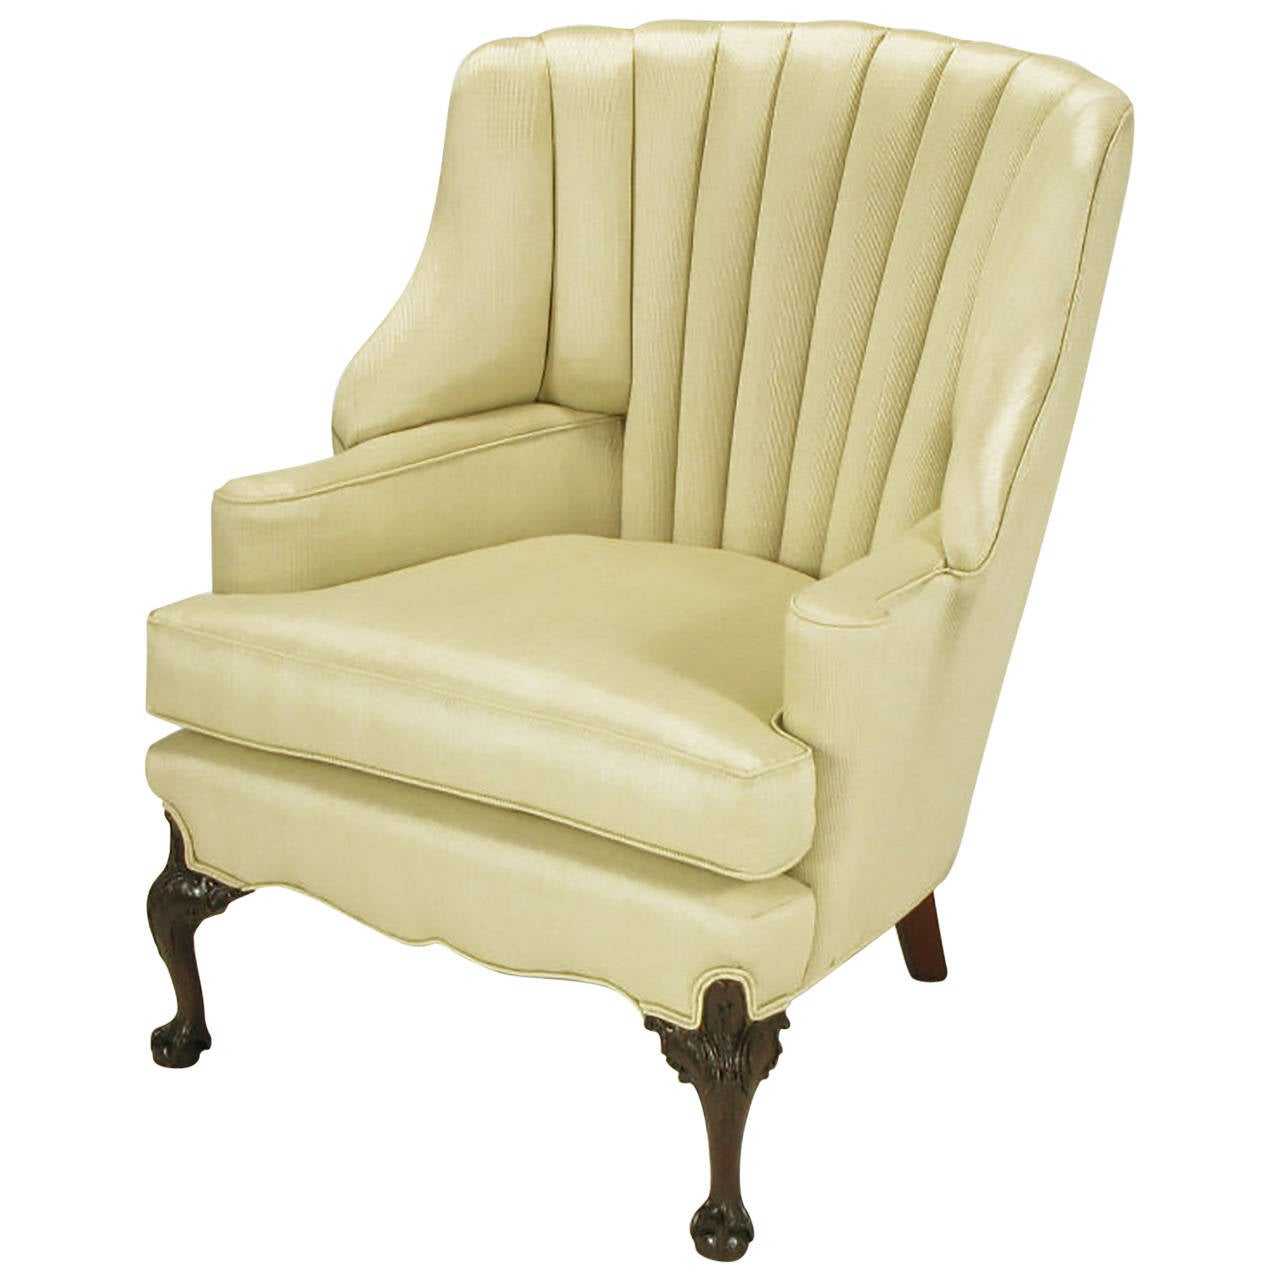 1930s channel back claw foot georgian wingback chair for sale at